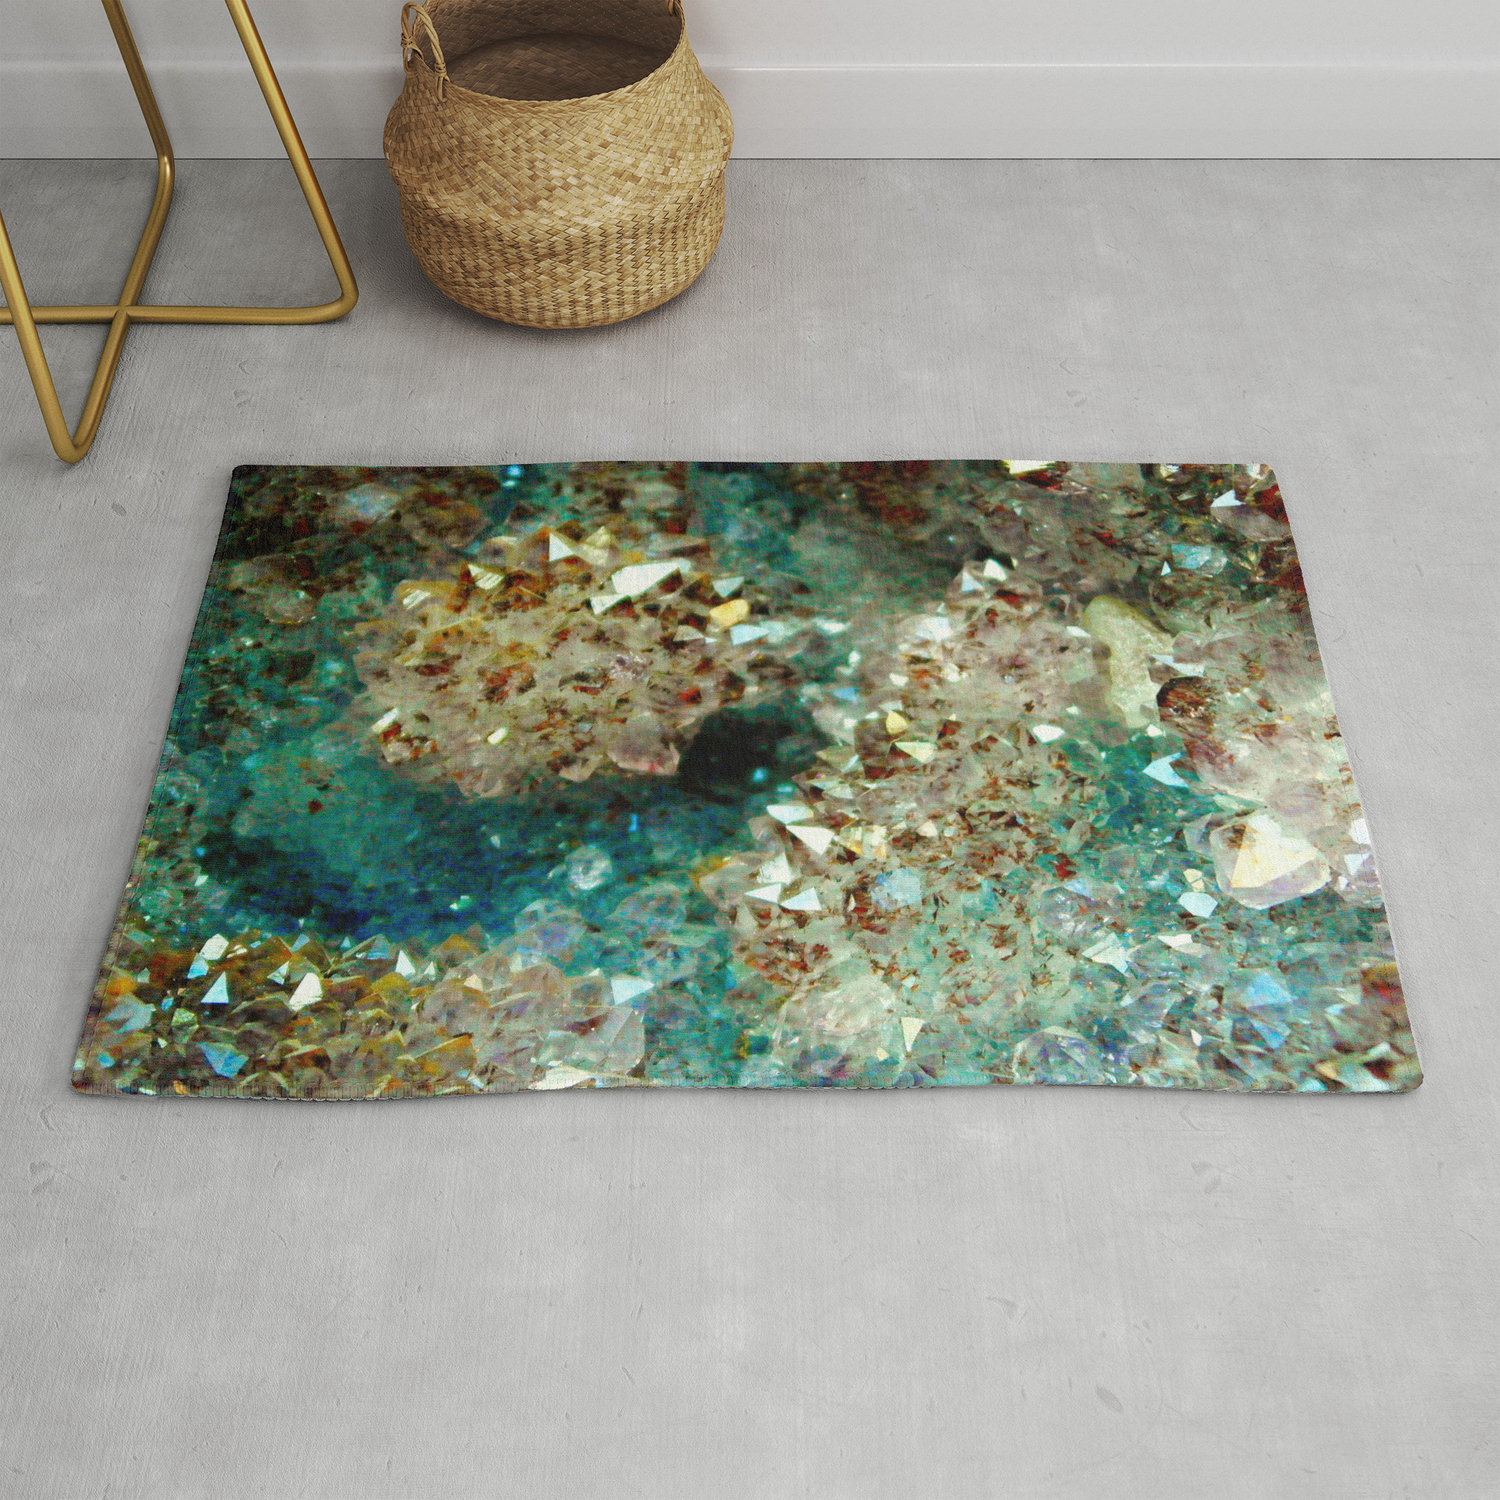 Sparkling Gold And Turquoise Crystal Rug By Thehornitoscompany Society6